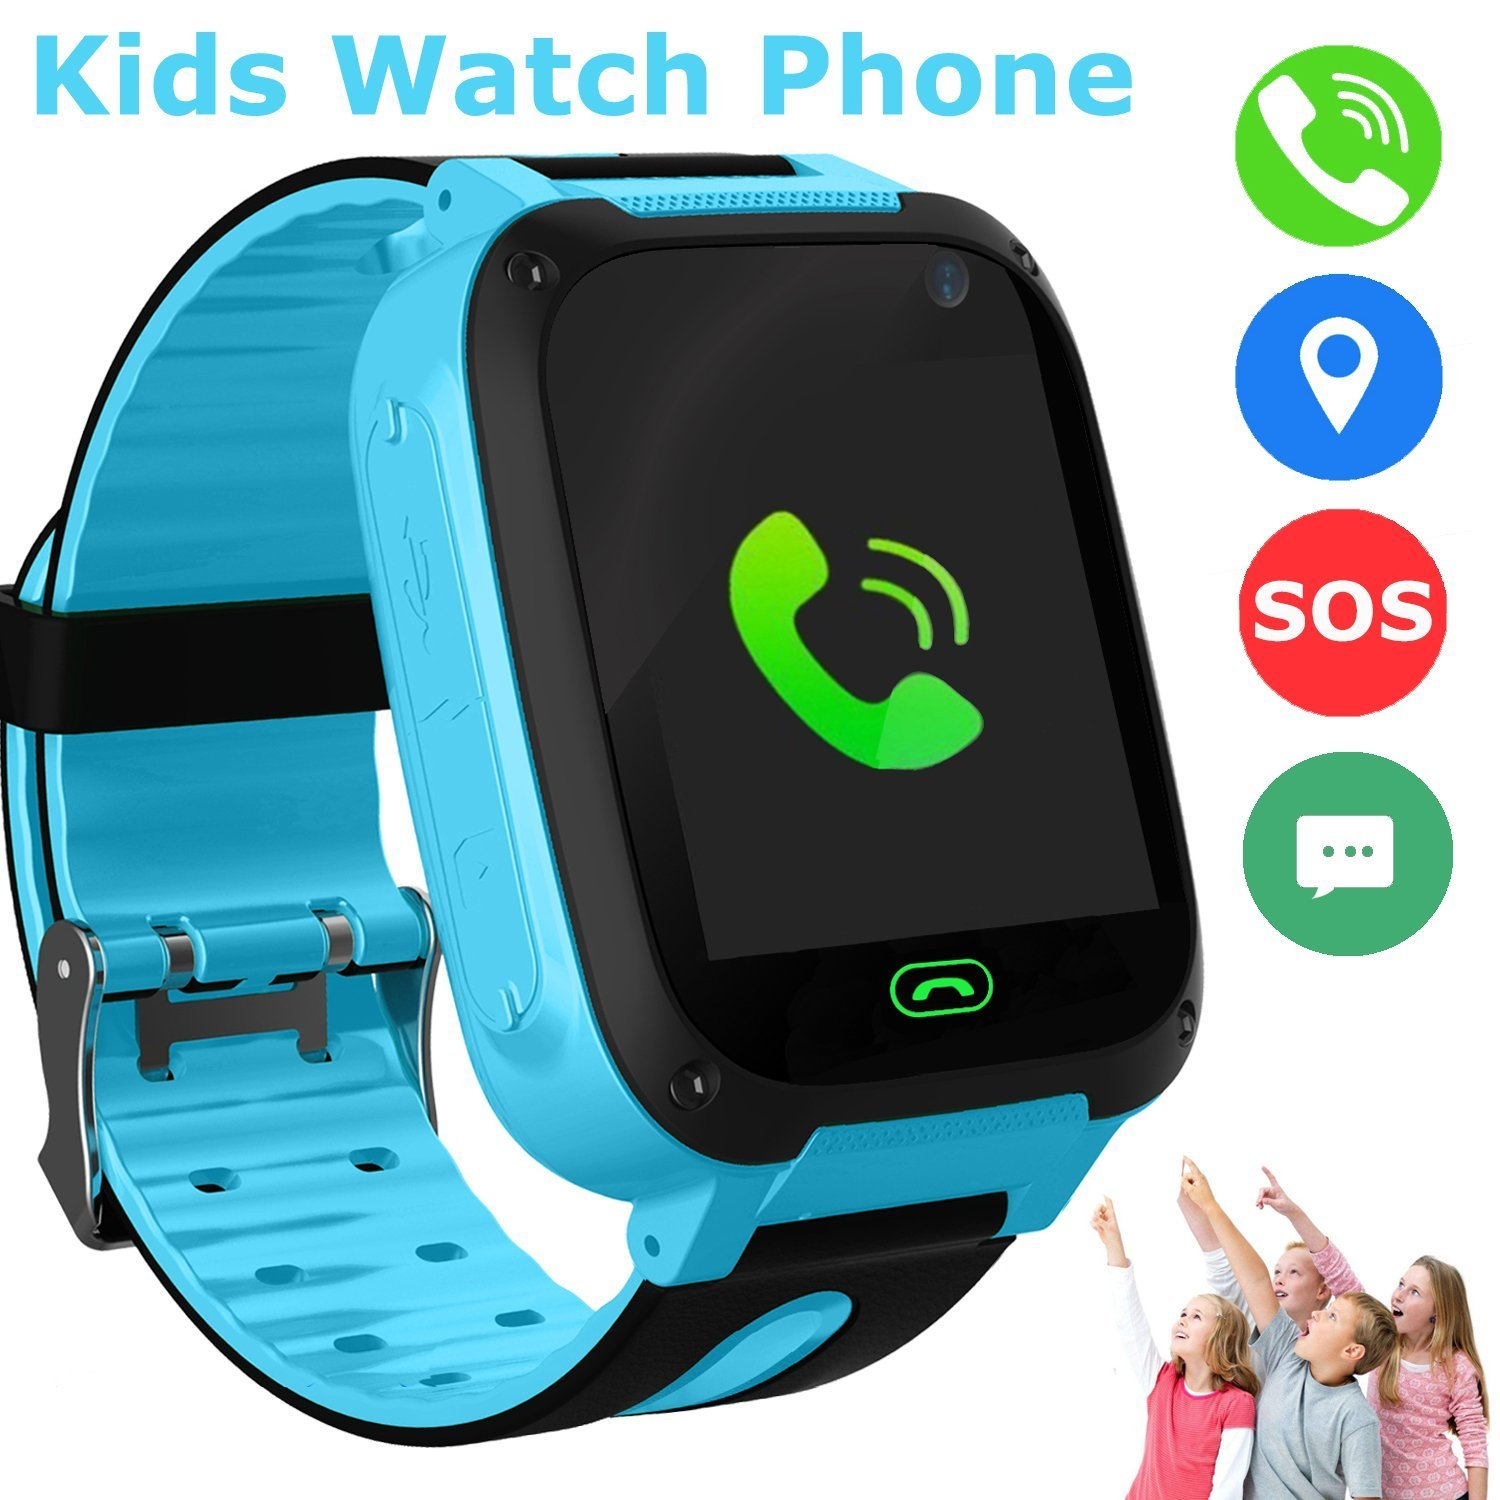 cd8ac9cd63eac2 Kids Smart Watch Phone, GPS Tracker Smart Wrist Watch for 3-12 Year Old  Boys Girls with SOS Camera Sim Card Slot Touch Screen Game Smartwatch  Outdoor ...